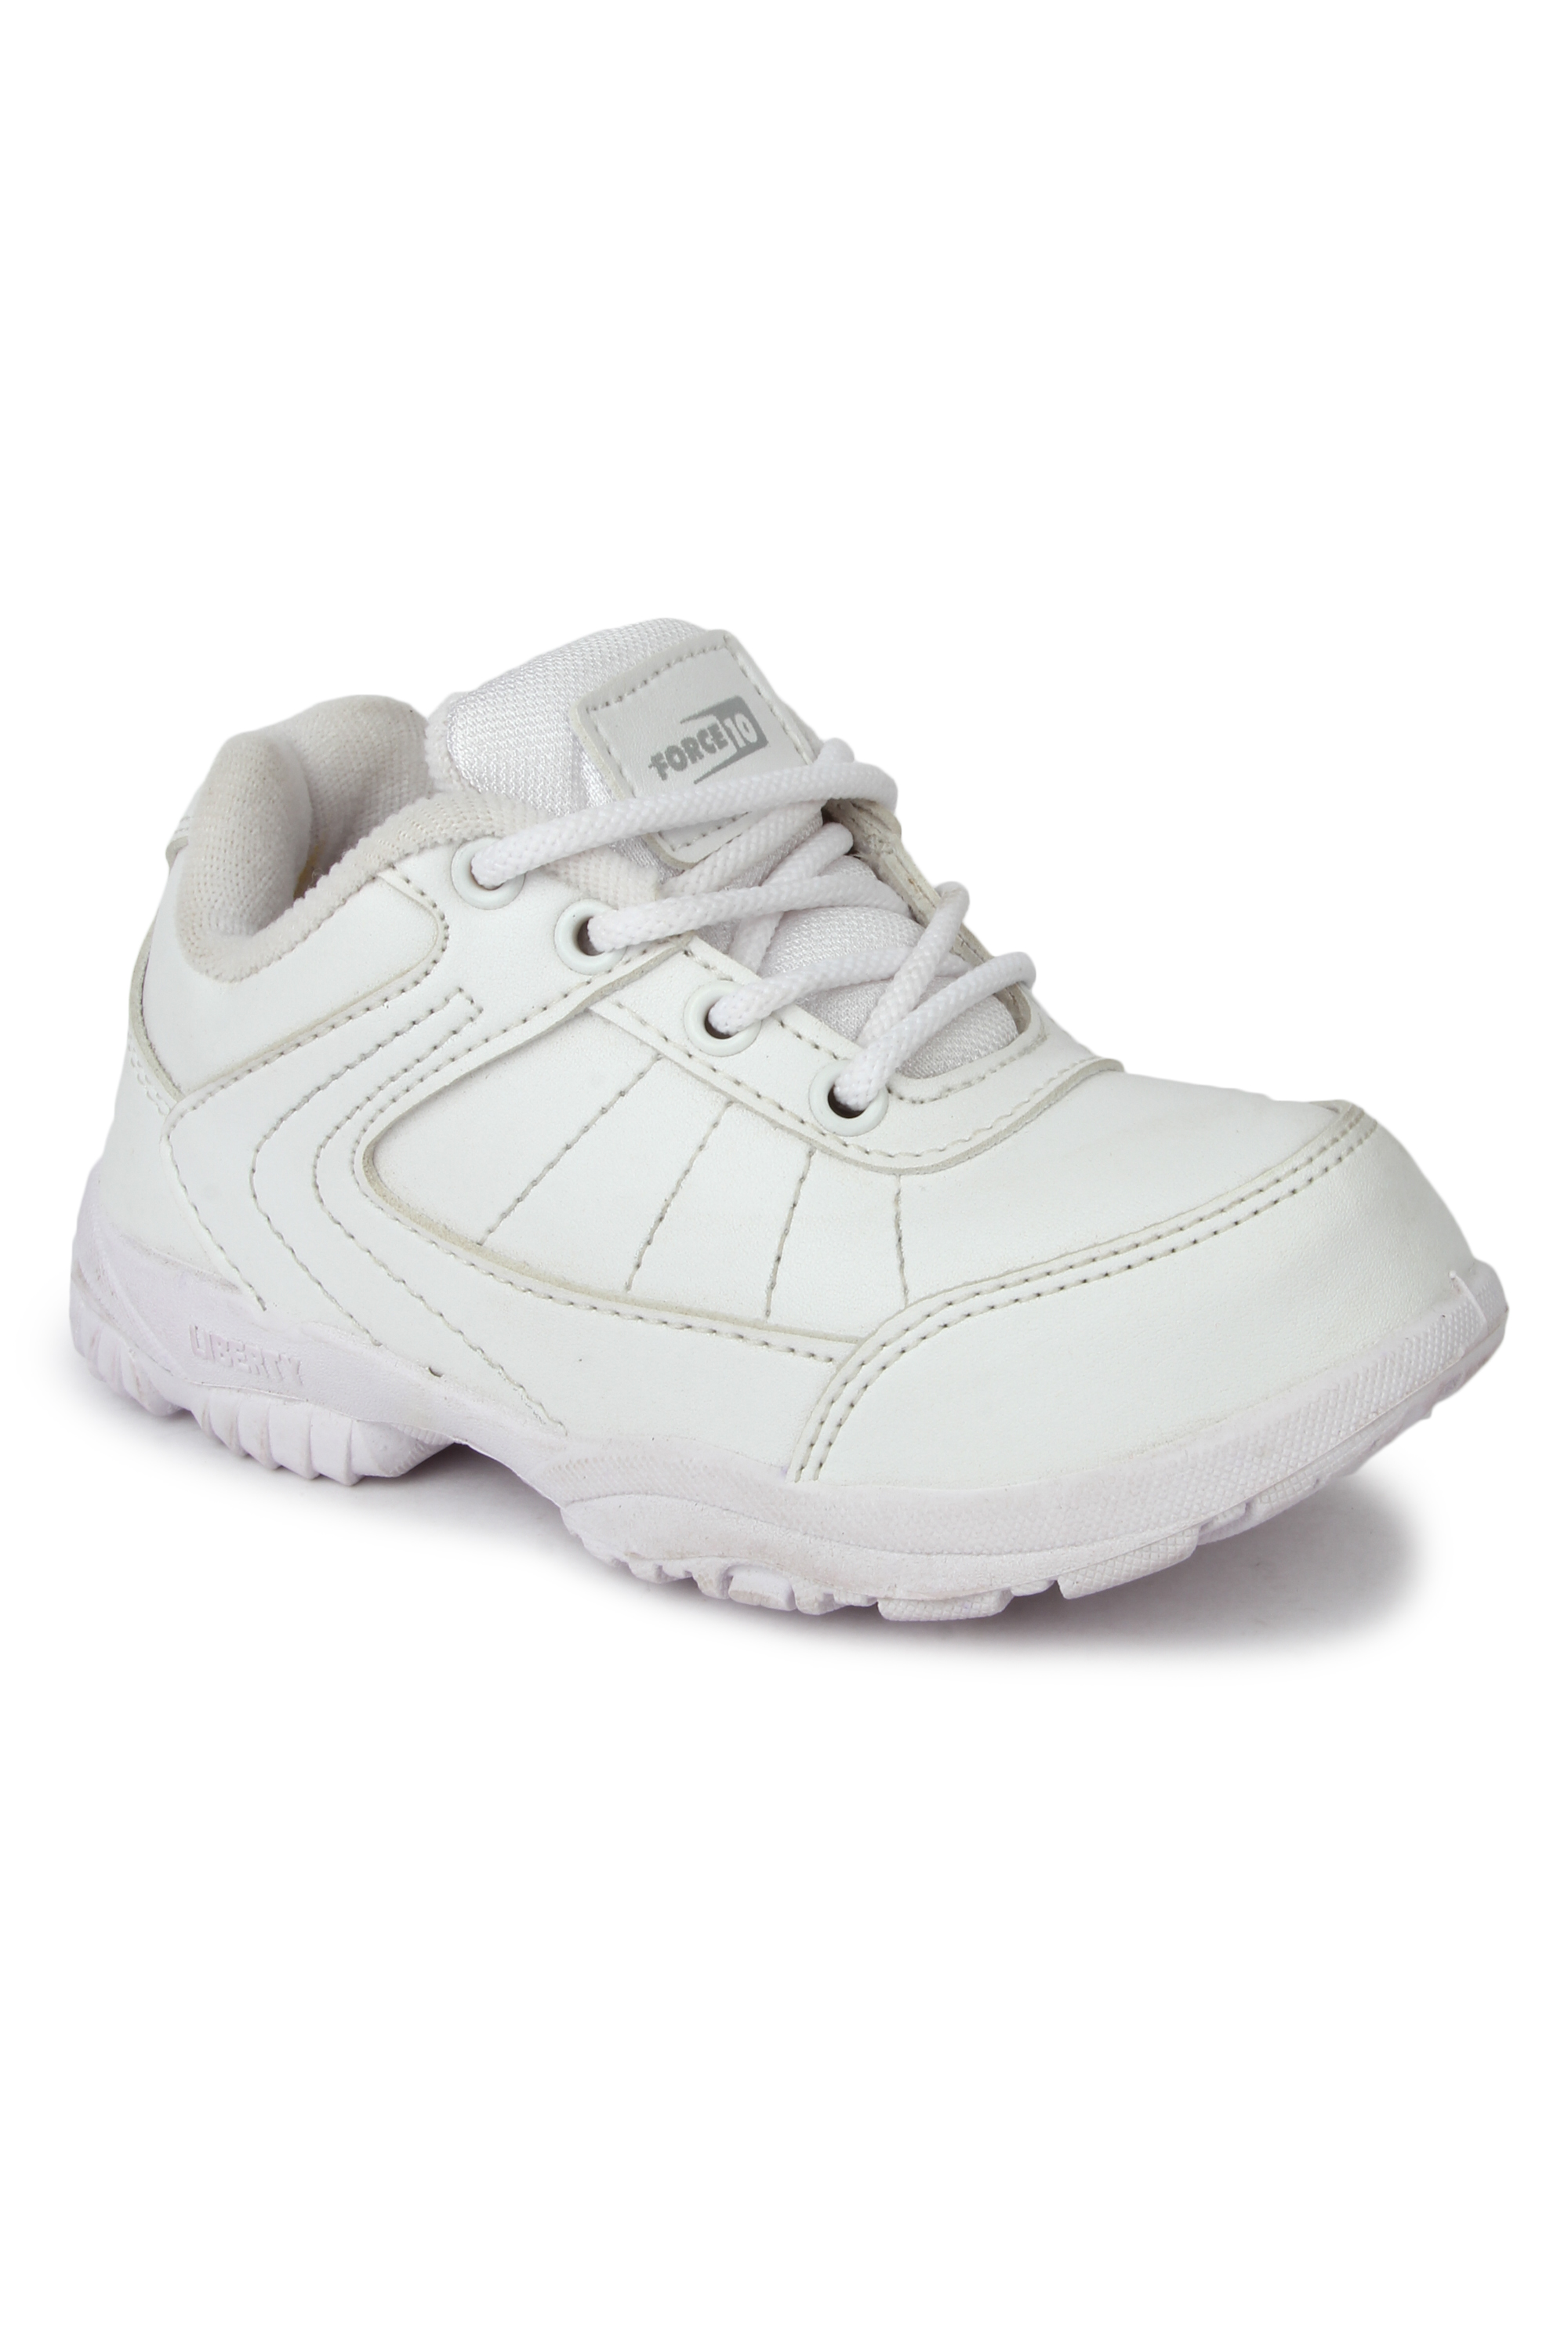 Liberty | Liberty Force 10 White School Shoes SCHZONE_White For - Boys